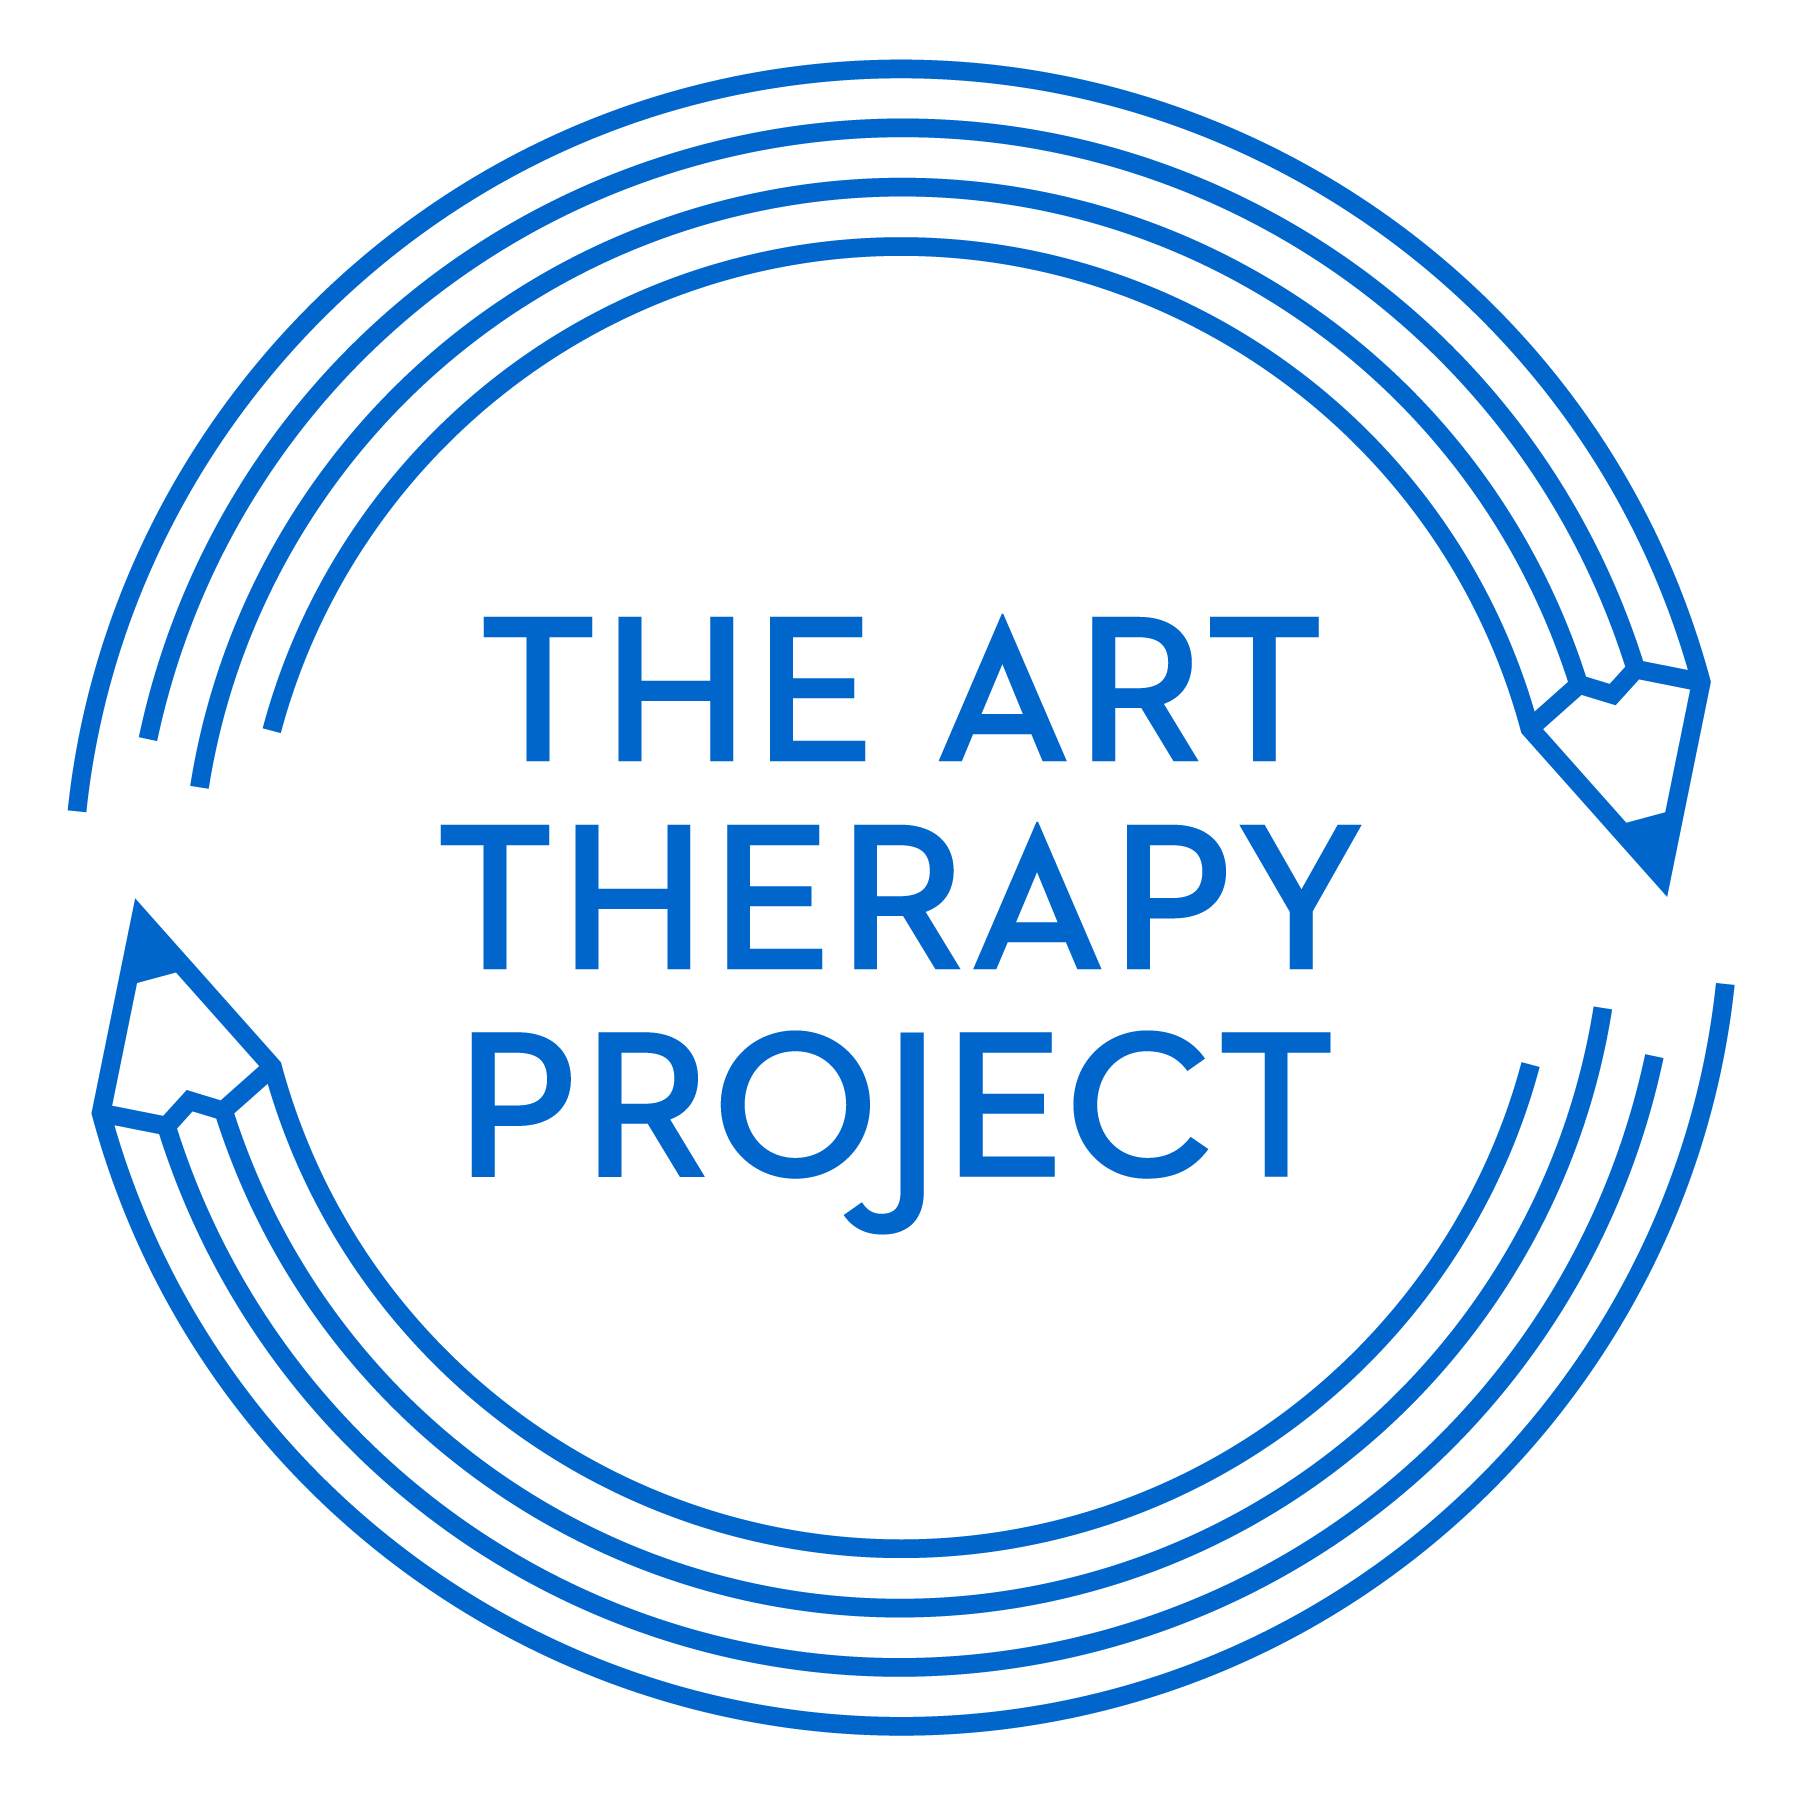 Art Therapy Workshop - #HealMeToo Festival Sponsor The Art Therapy Project offered an art-making activity workshop. Led by art therapist Suzanne Deisher, ATR-BC, LCAT, attendees gained an understanding how art therapy is used to help those who have experienced trauma.Learn more